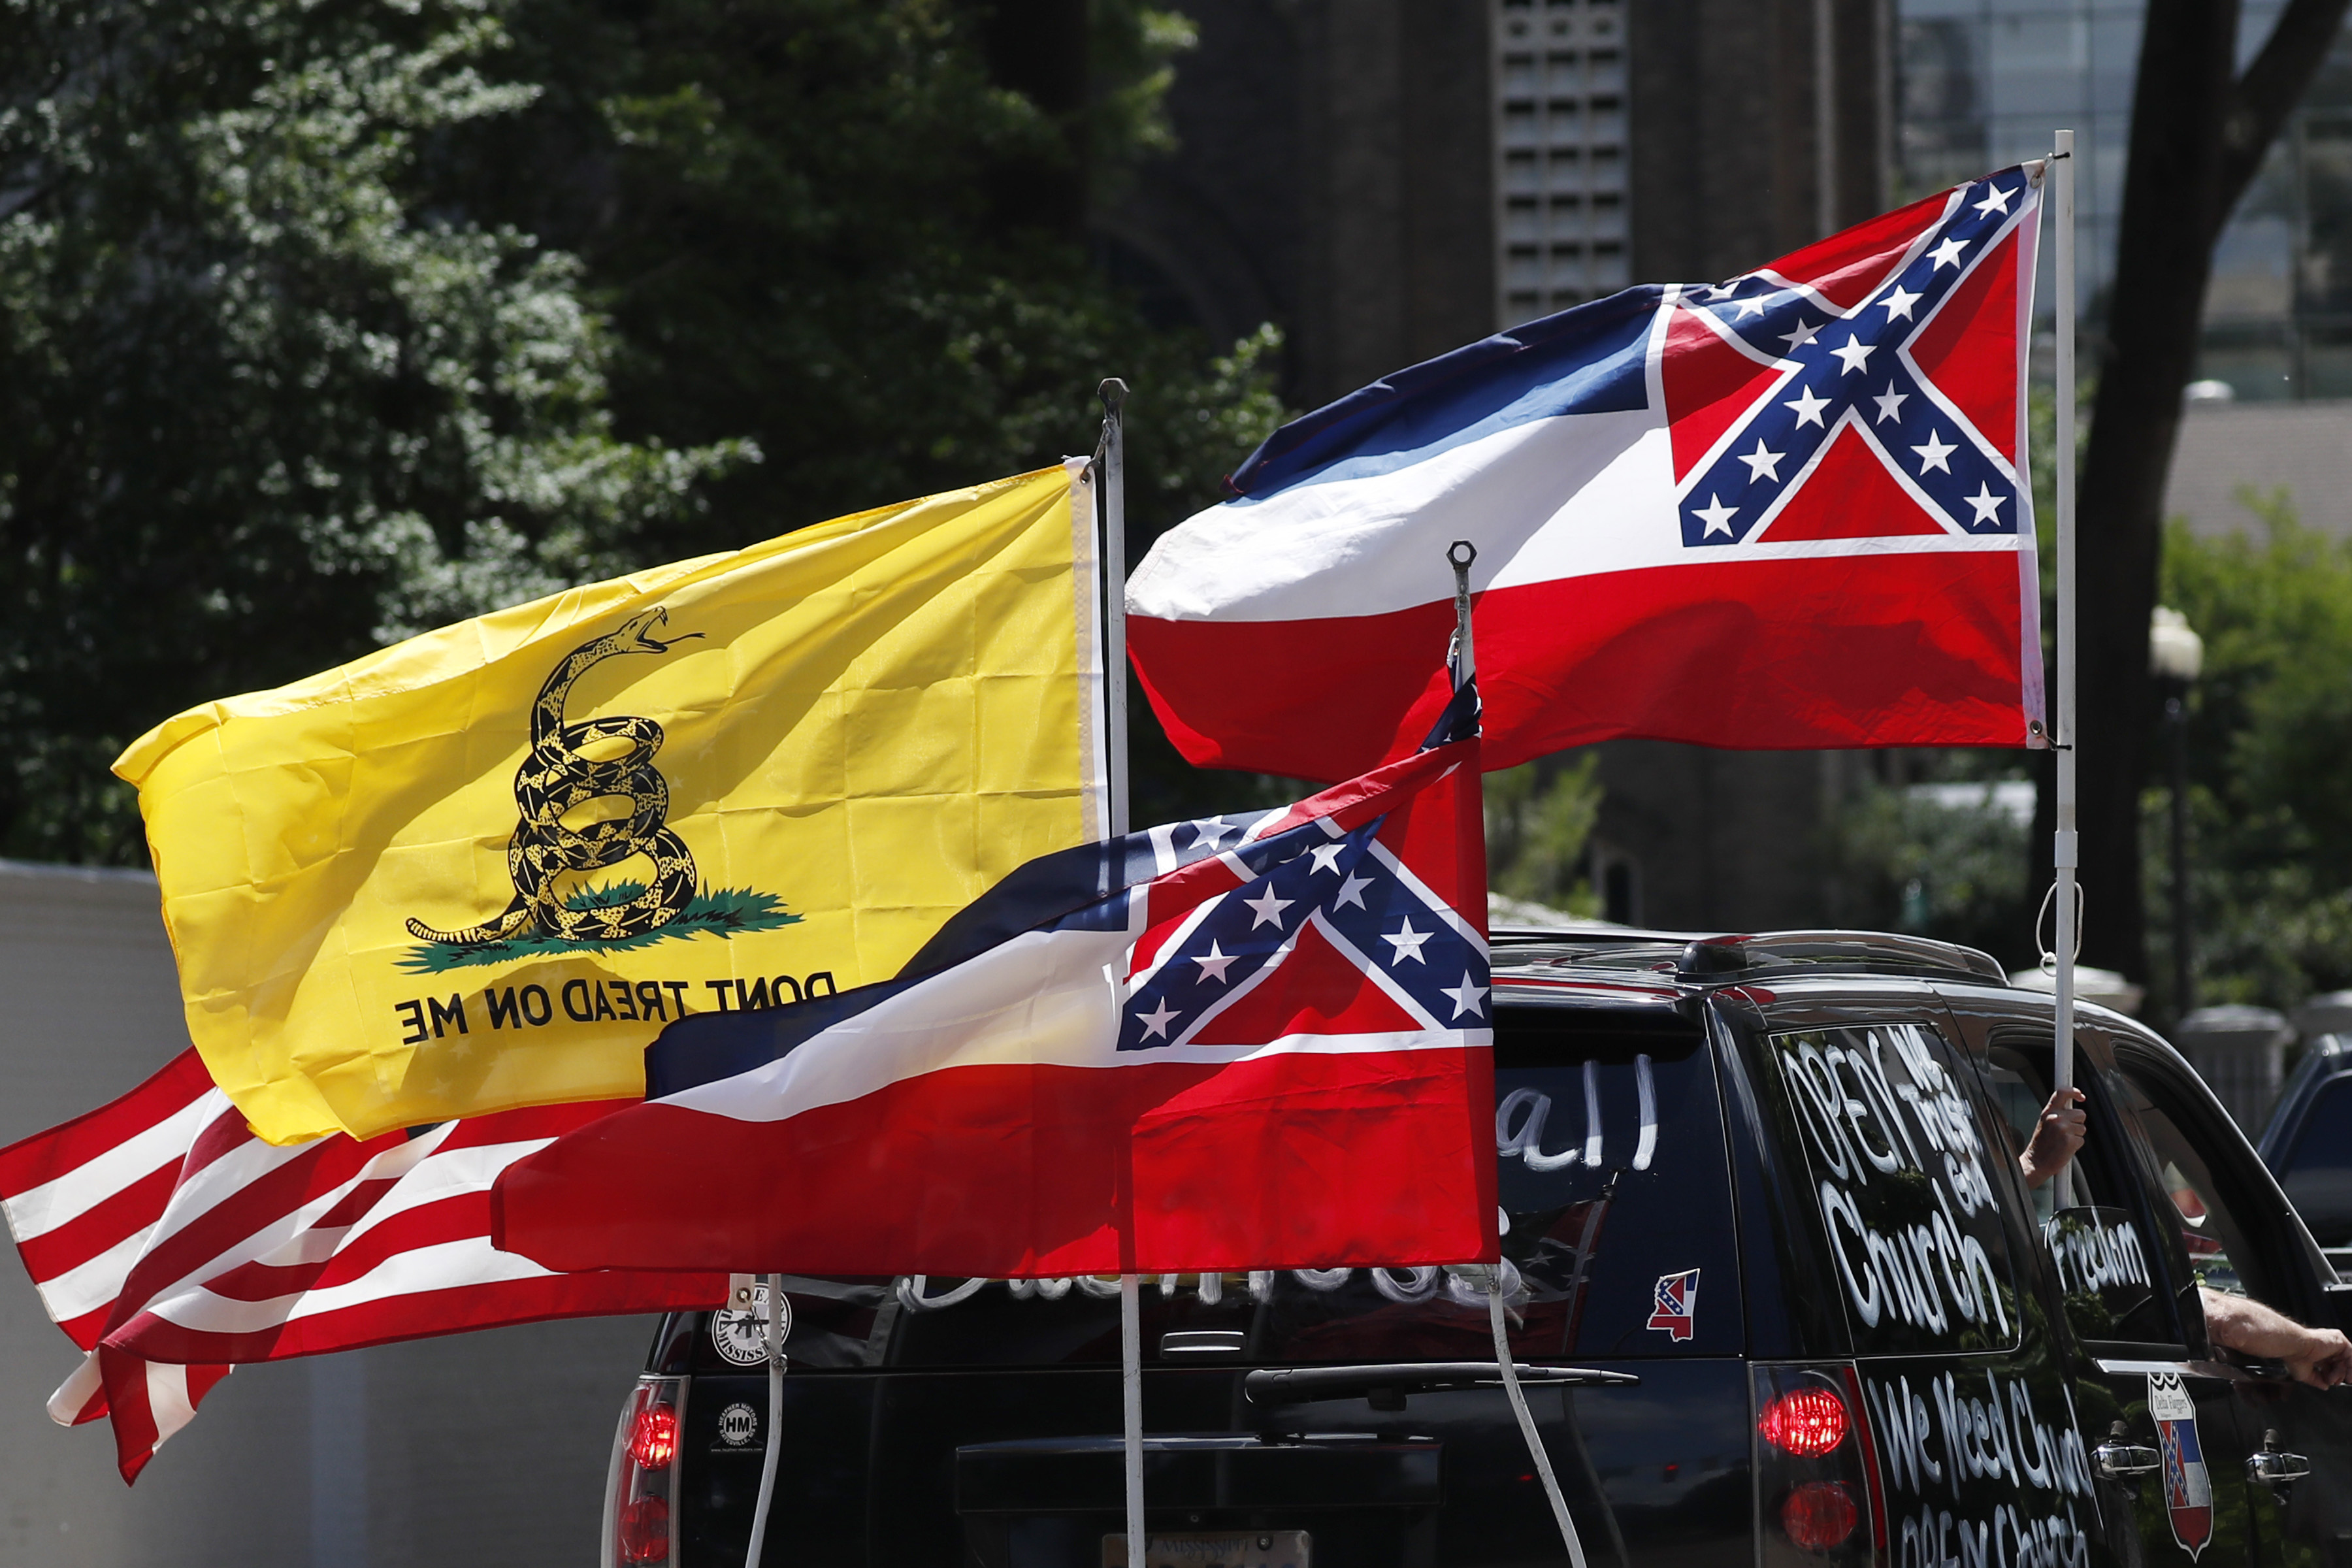 Mississippi state flags are positioned on a vehicle amid an arrangement with the American flag and a Gadsden flag during a drive-by  re-open Mississippi  protest past the Governor's Mansion, in Jackson, Miss., on April 25, 2020.